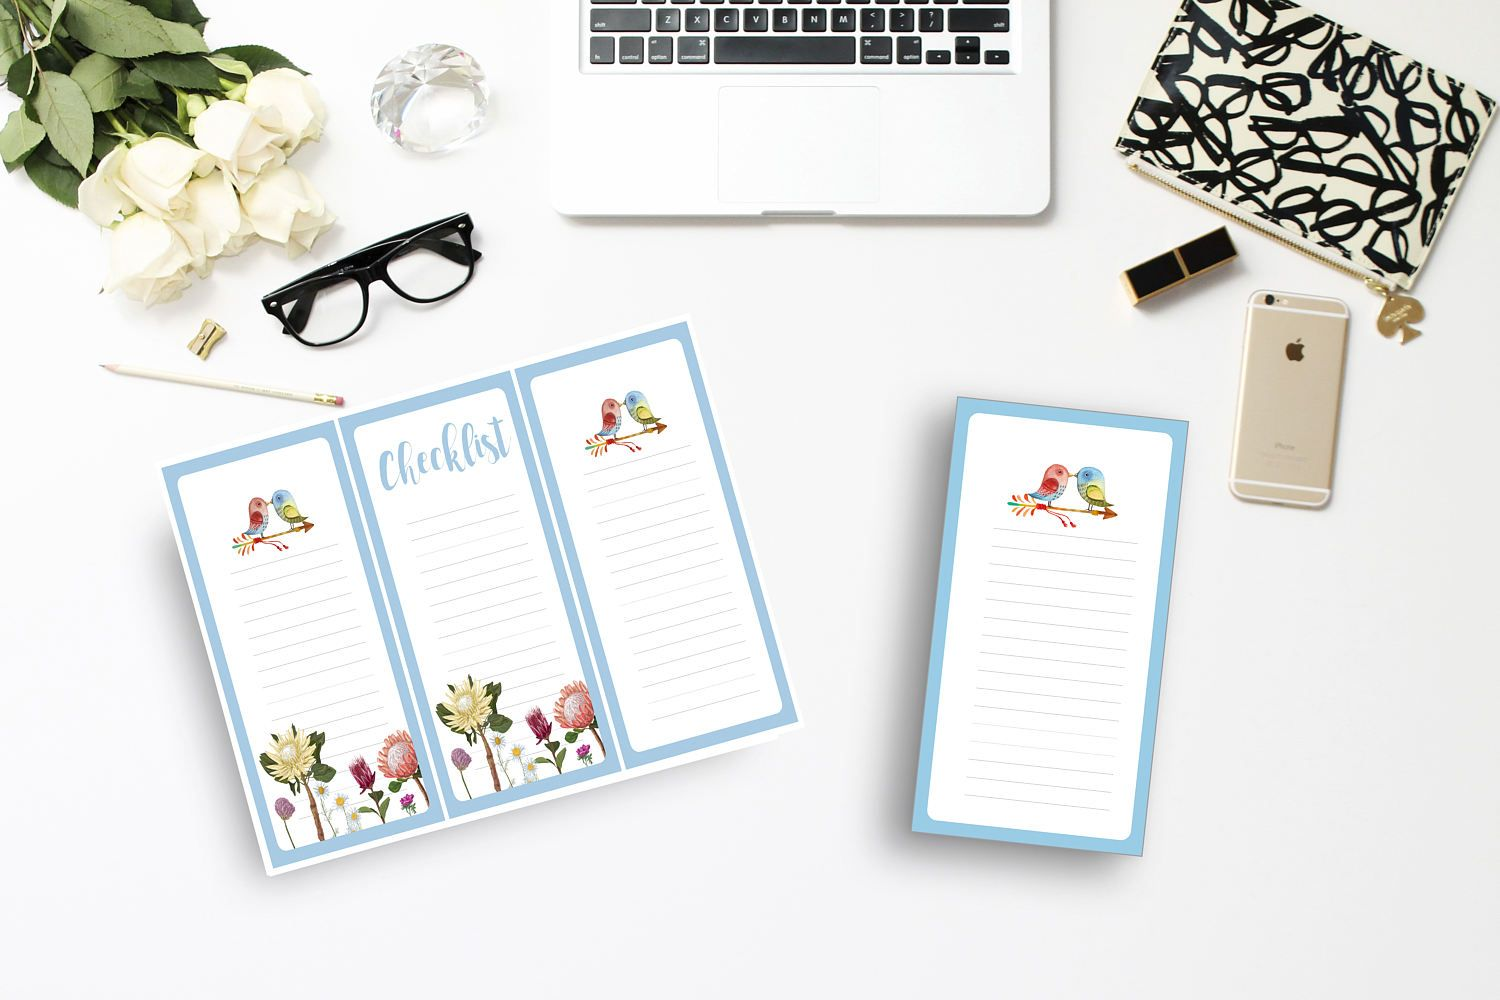 Printable Notepad Paper Adorable Printable Note Paperblueshopping List Notesto Do Listchecklist .